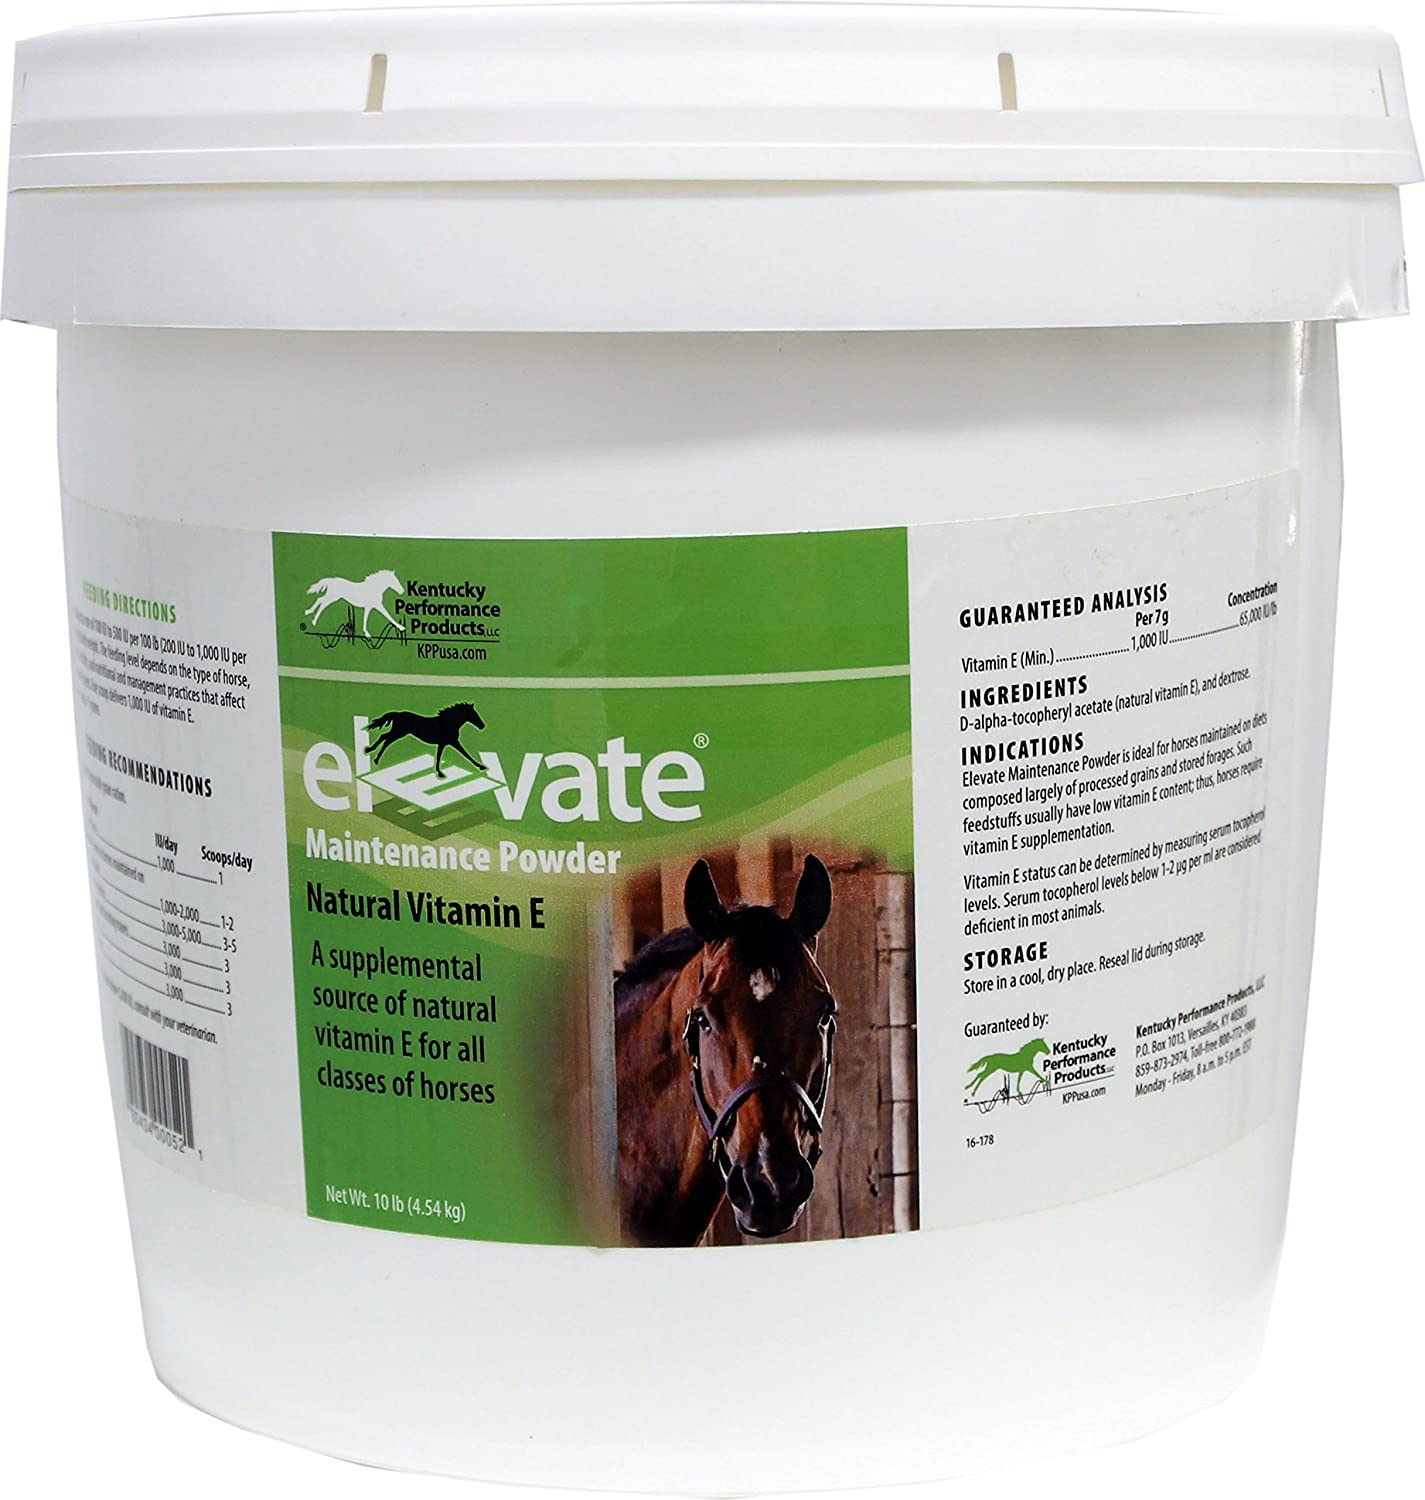 Kentucky Performance Products 044344 Elevate Maintenance Powder Supplement for Horses